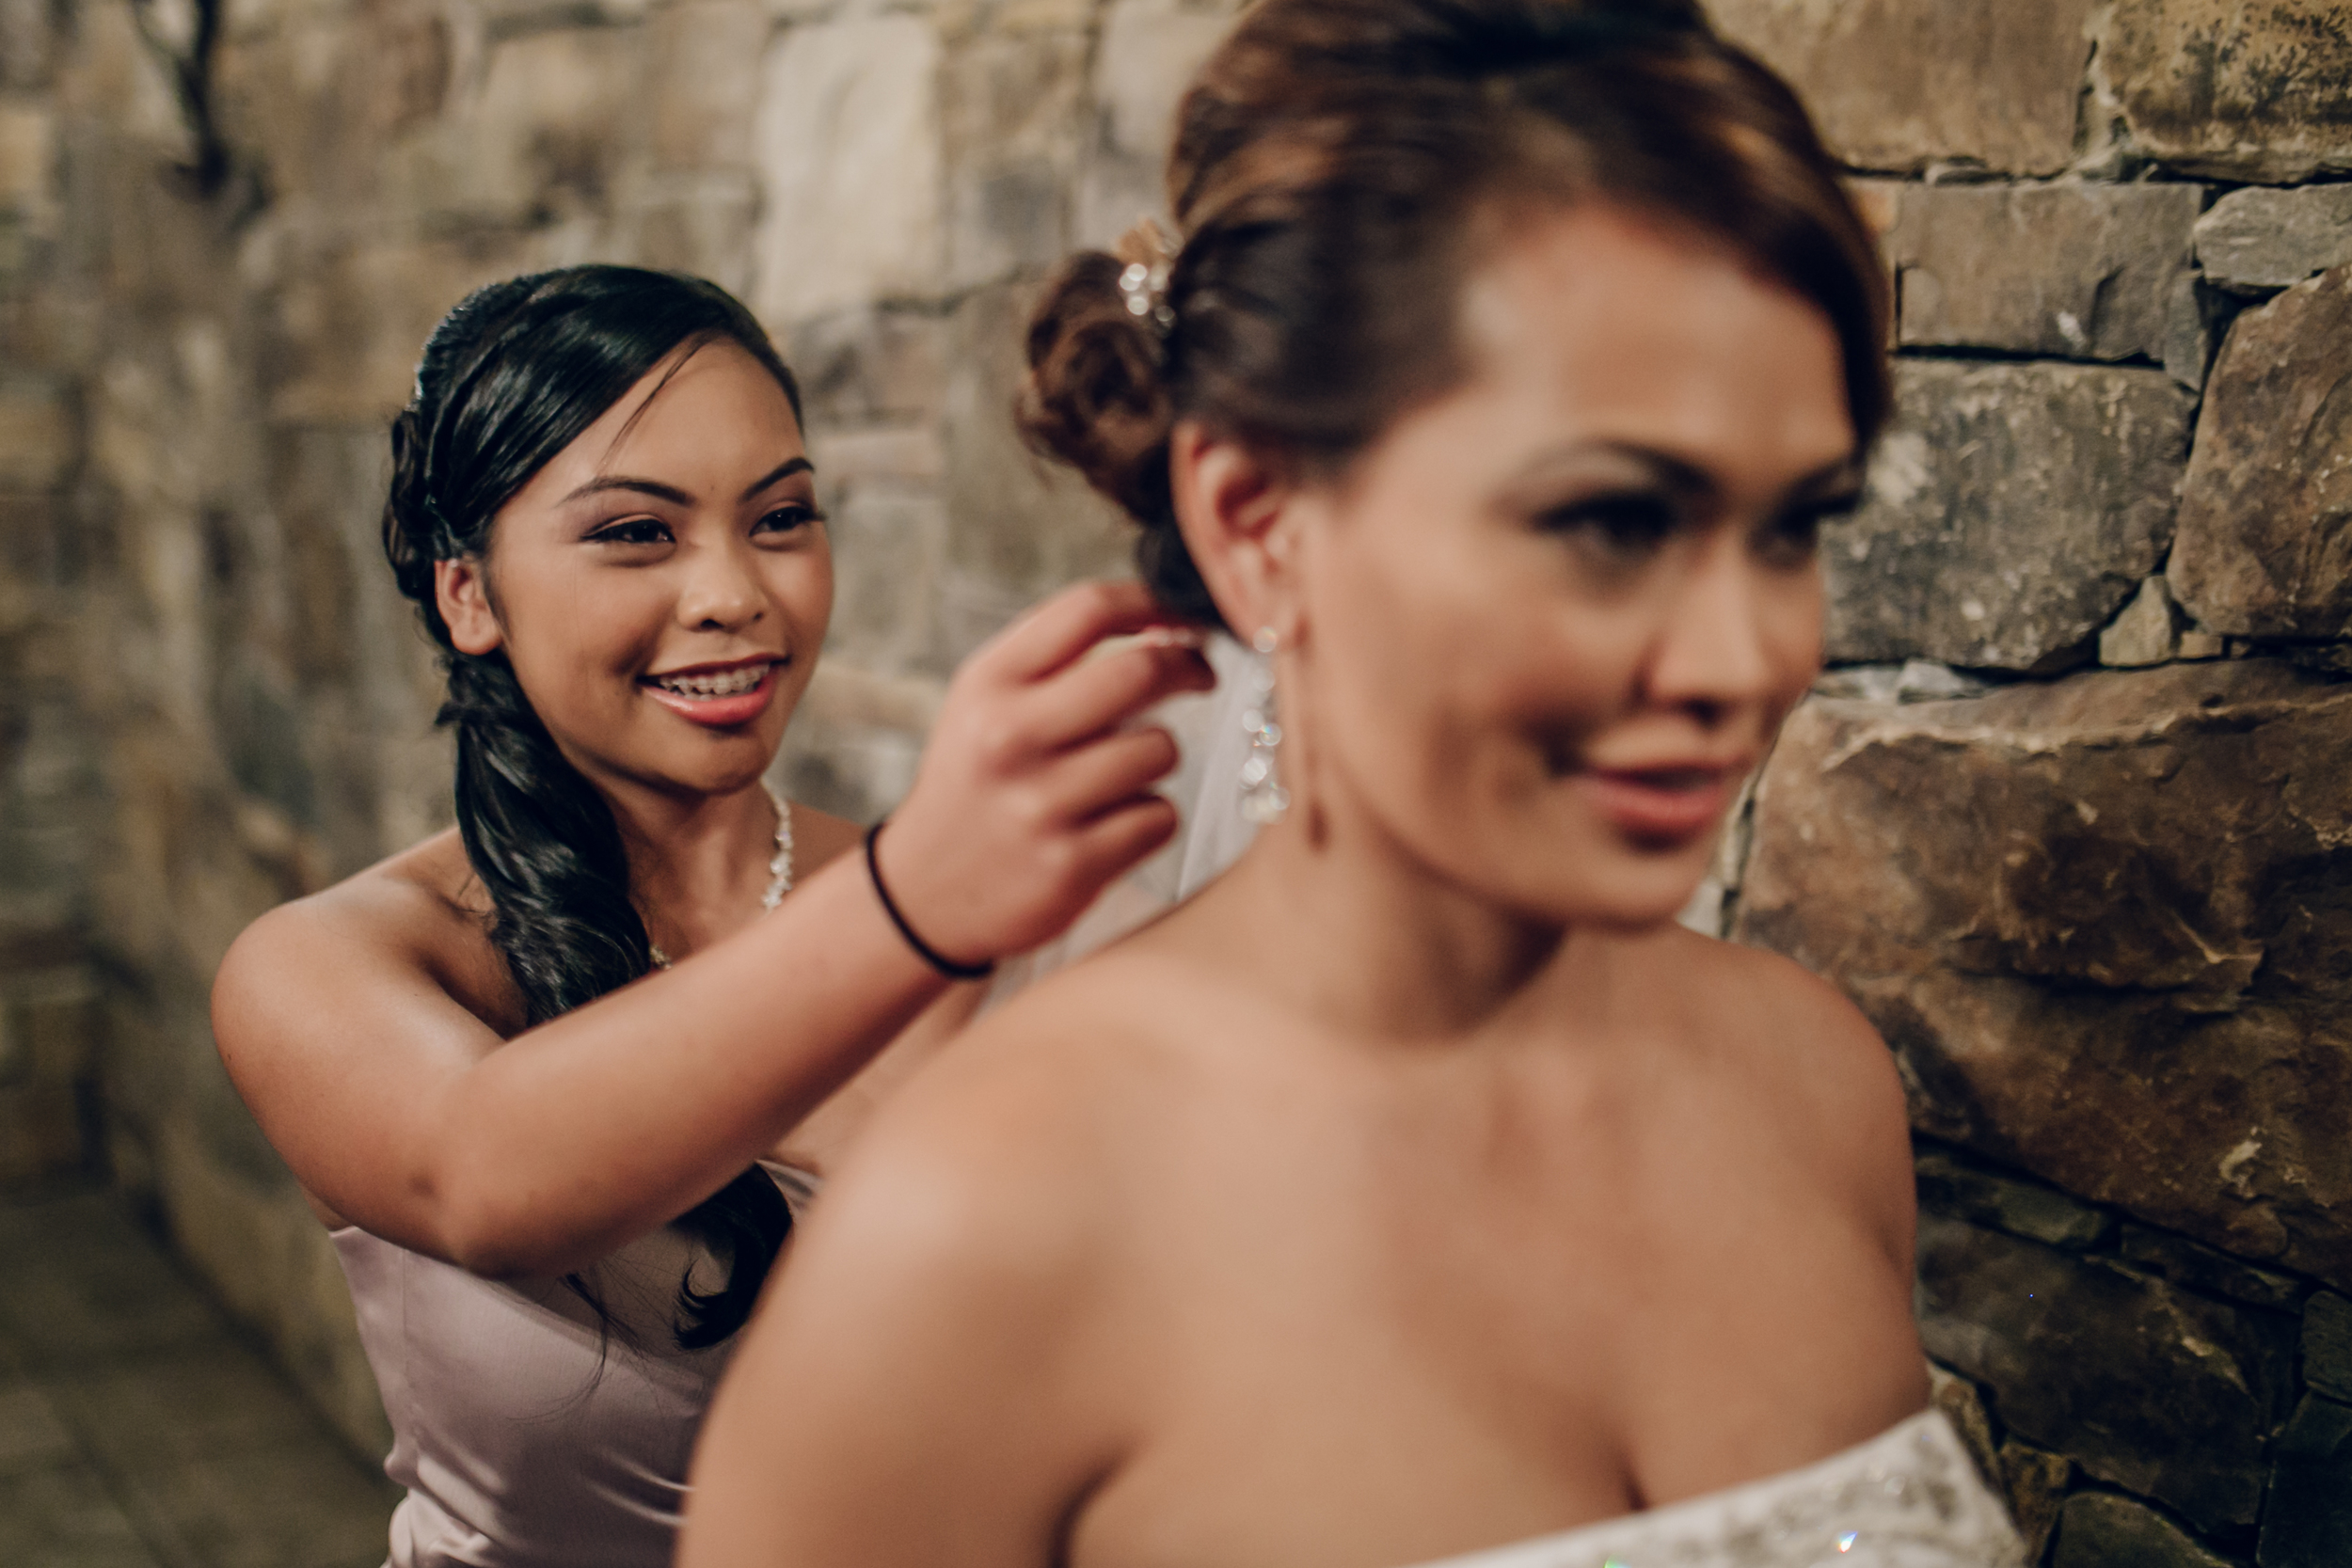 Shiela + Lester's Wedding 9-30-15 615.jpg